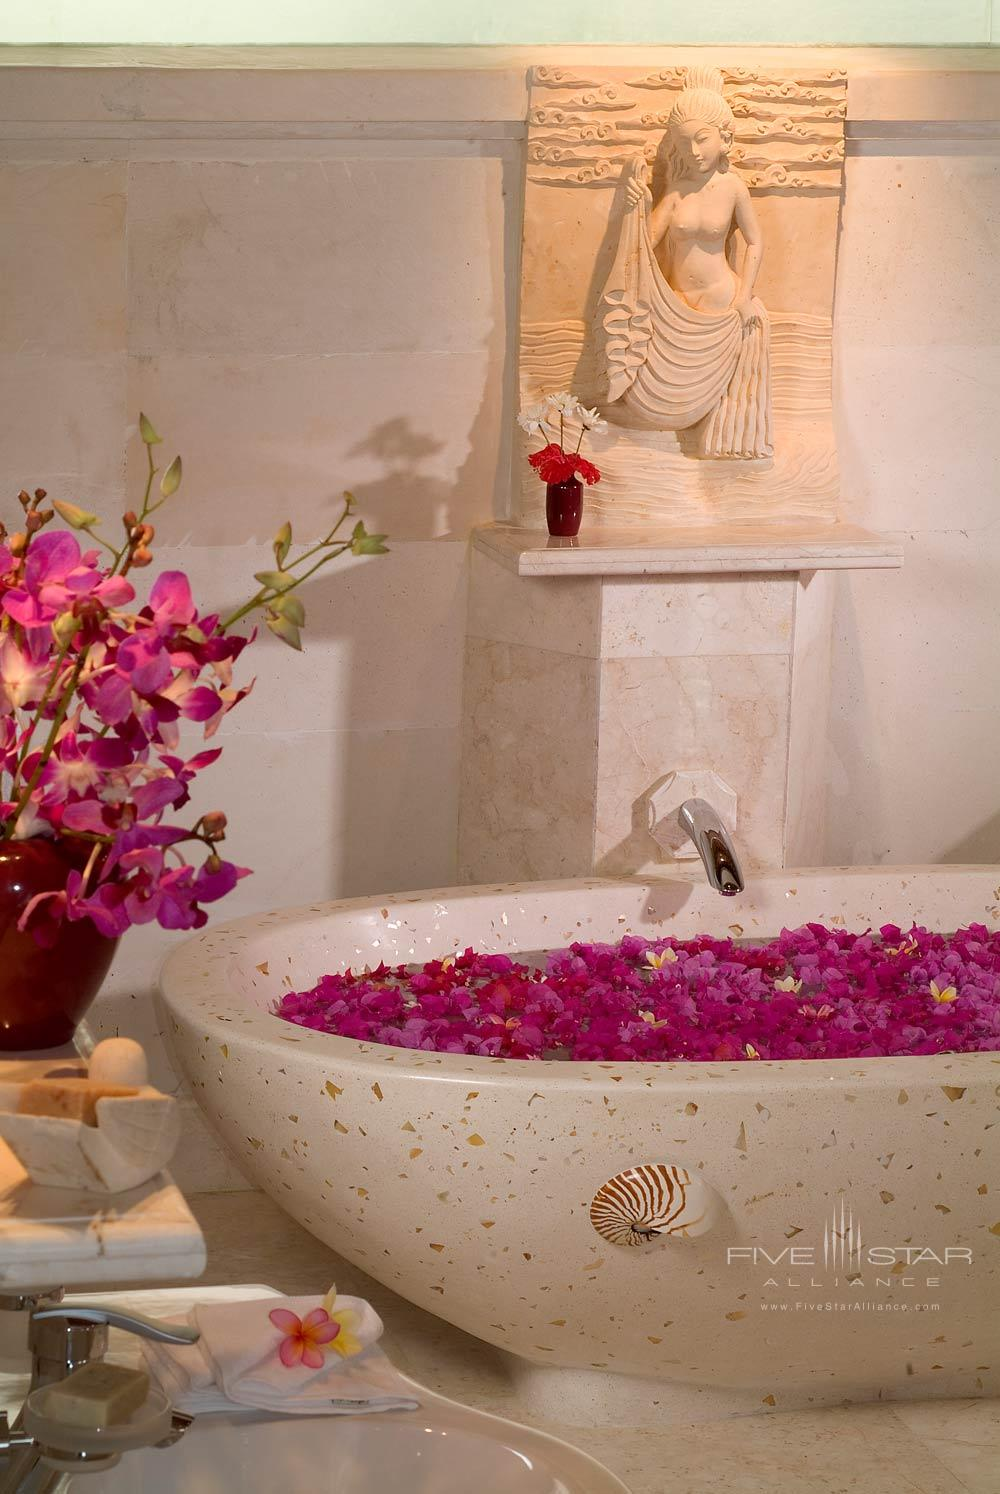 Stay in the Terrace Villa and take delight in a luxurious flower bathViceroy Bali